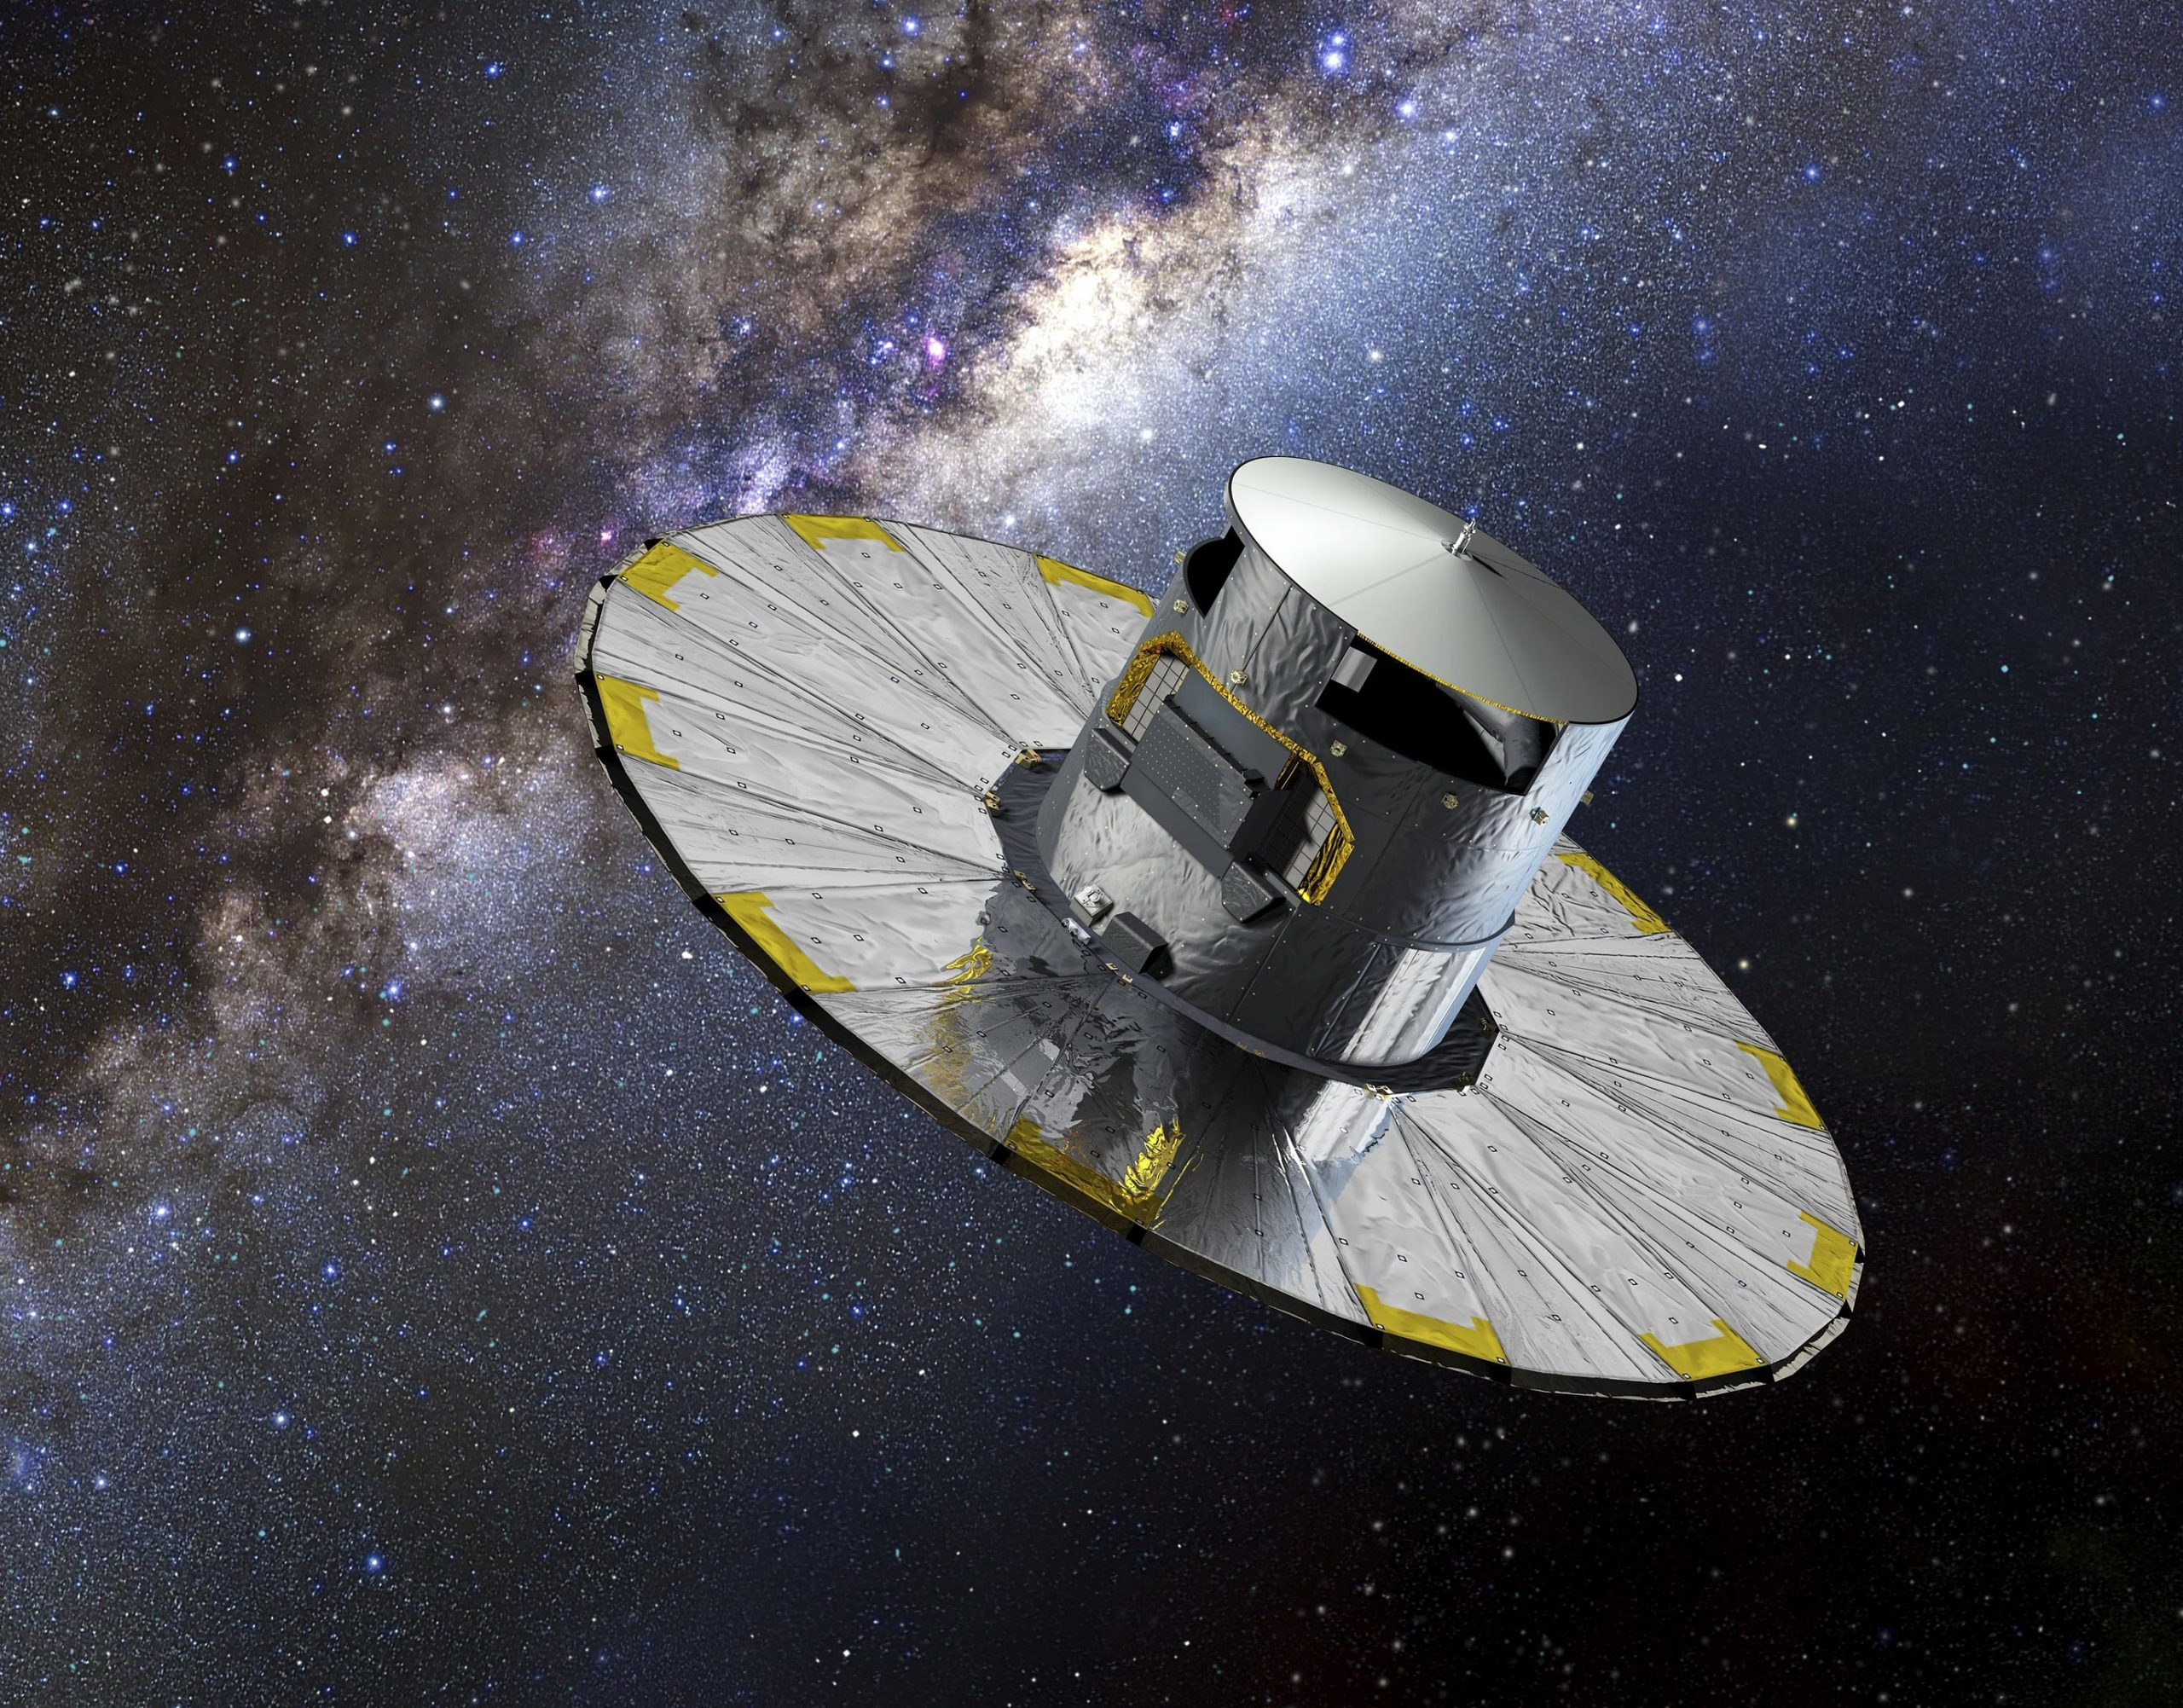 Gaia Space Observatory Revolutionizes Asteroid Tracking - SciTechDaily